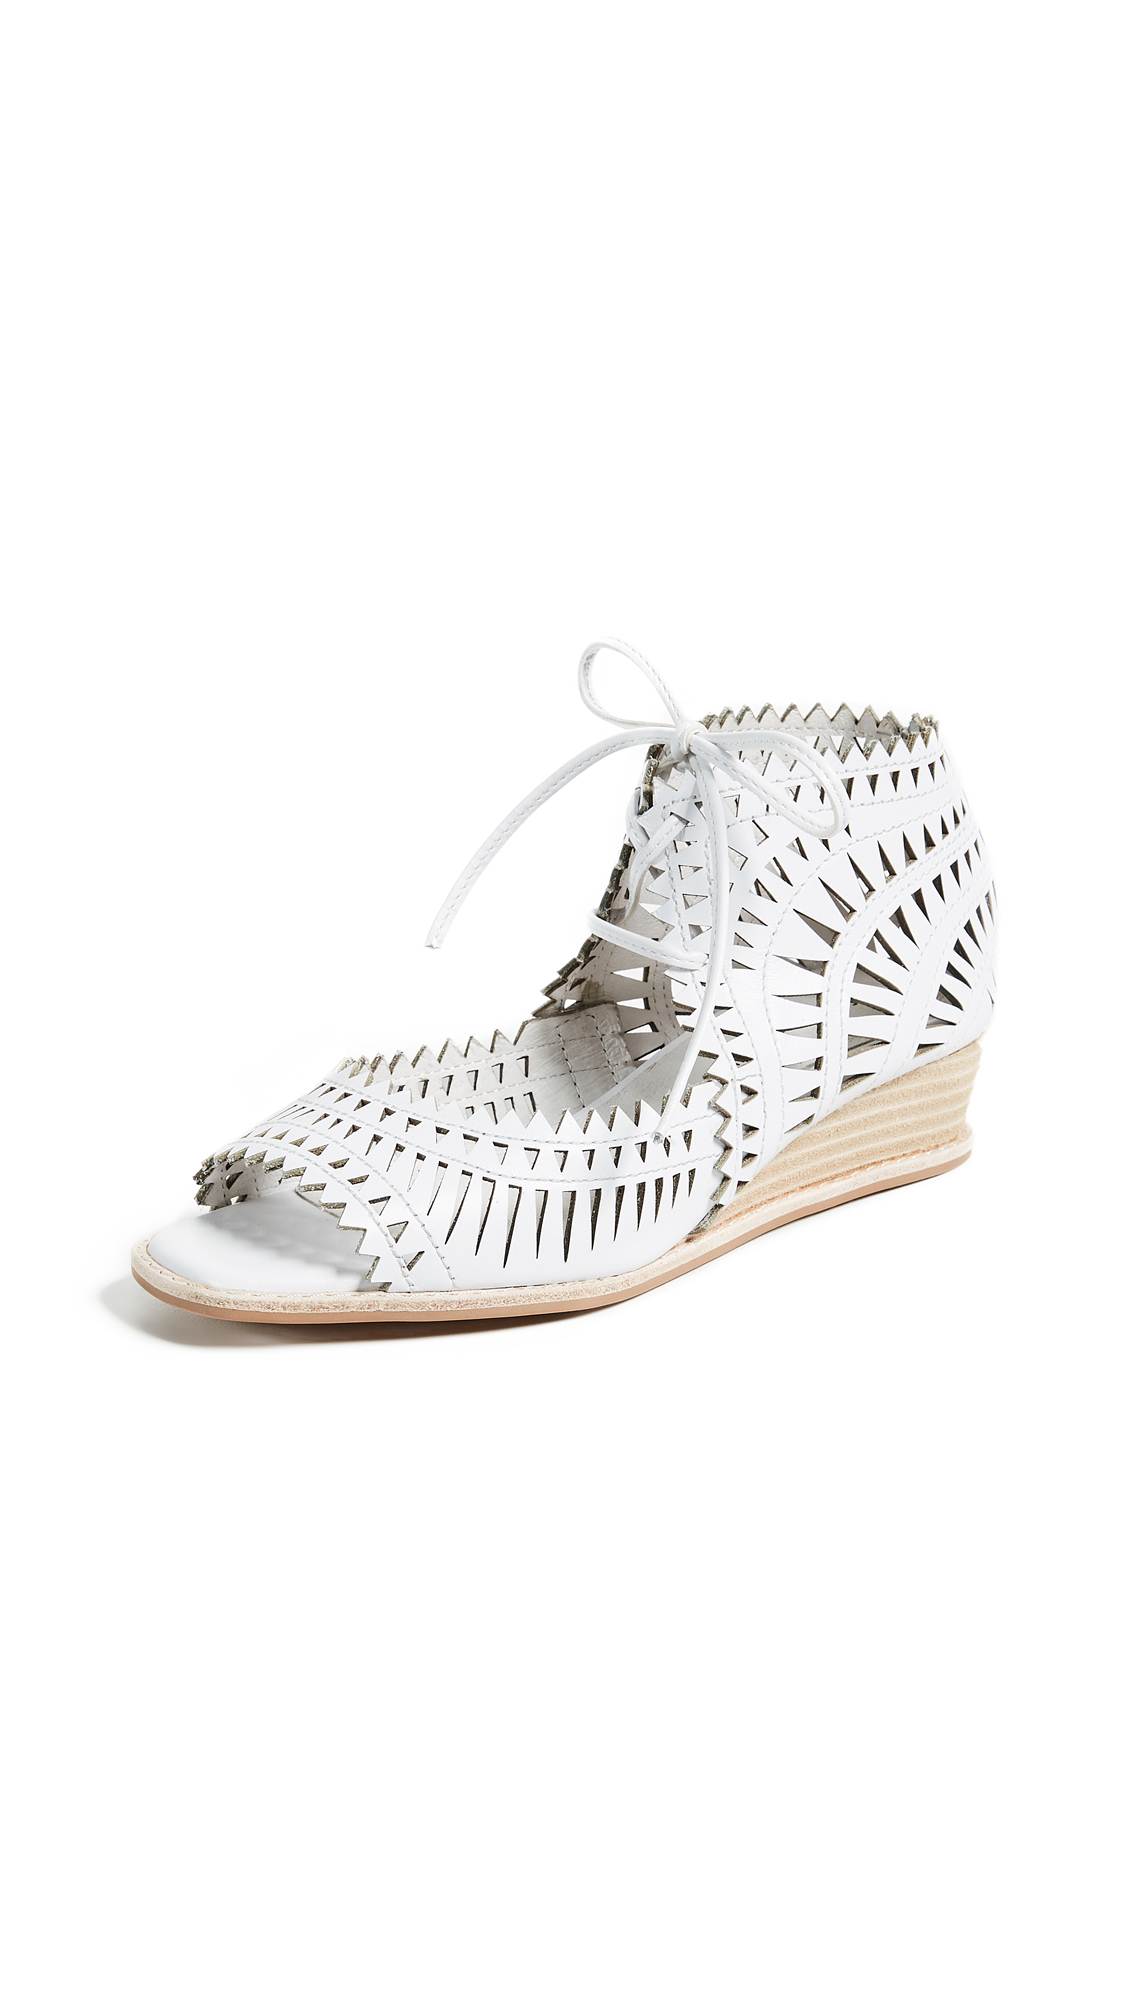 Jeffrey Campbell Rodillo Wedge Sandals - White